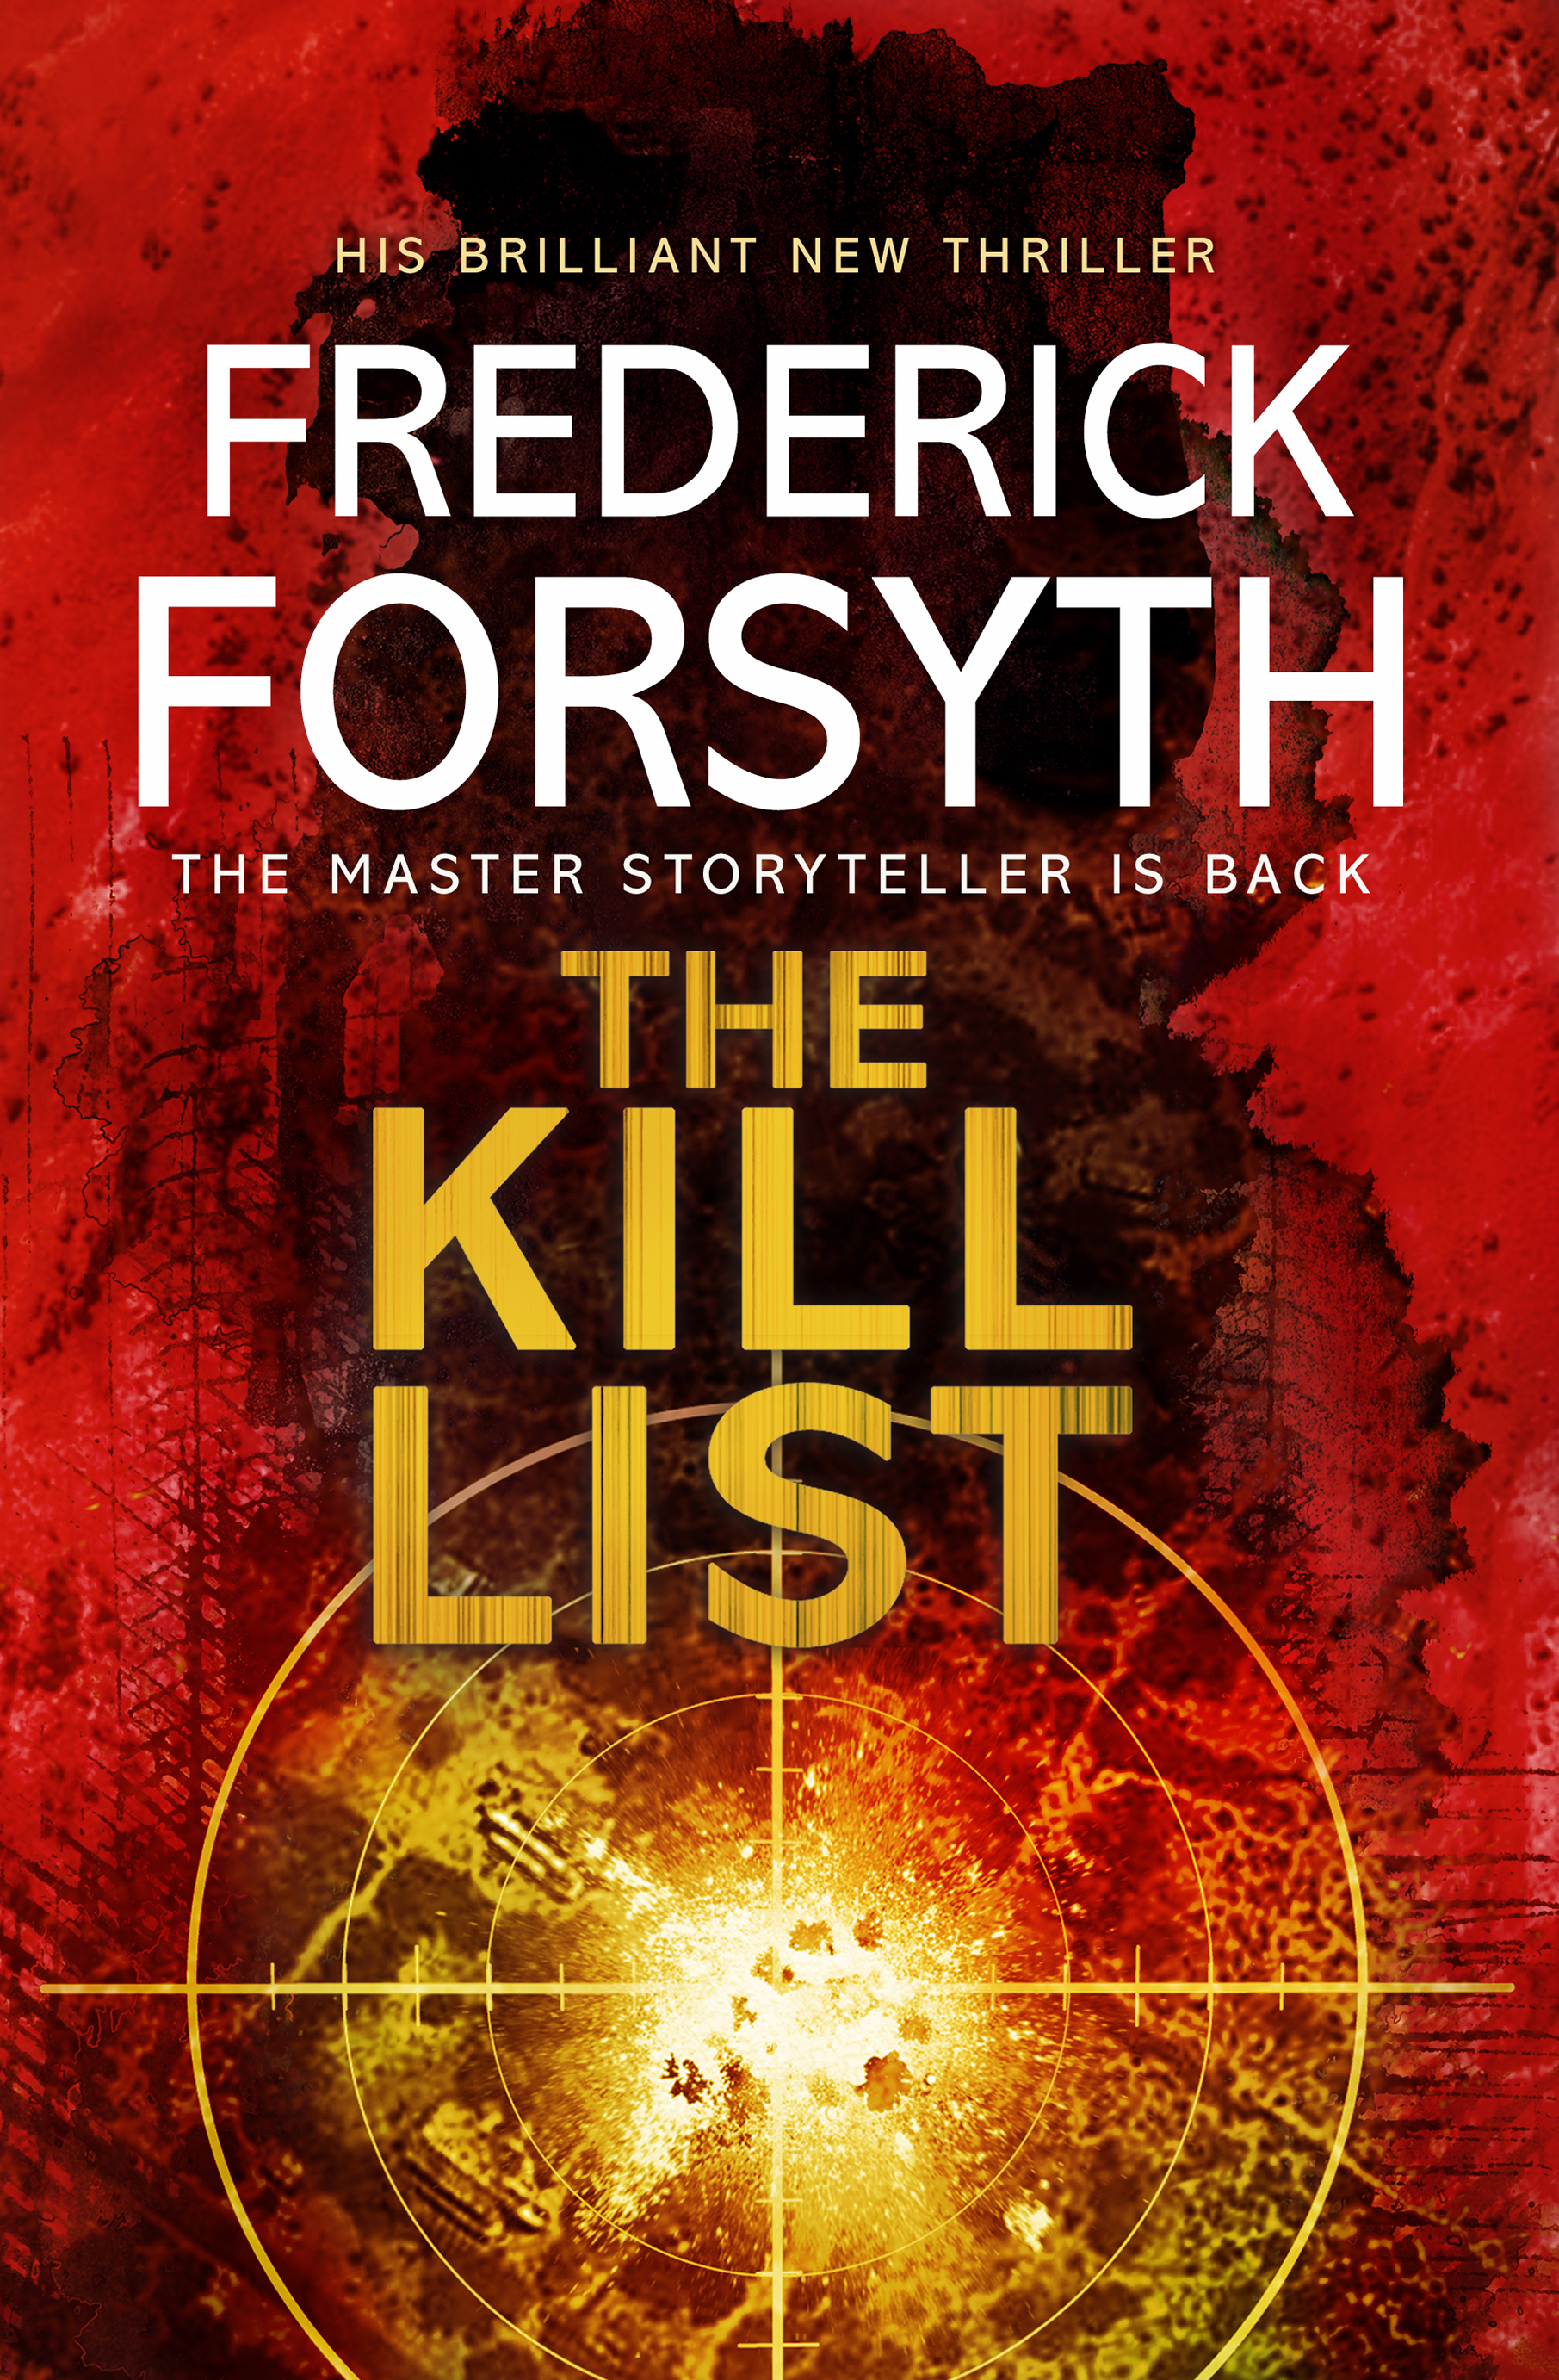 THE KILL LIST (HB) Frederick Forsyth